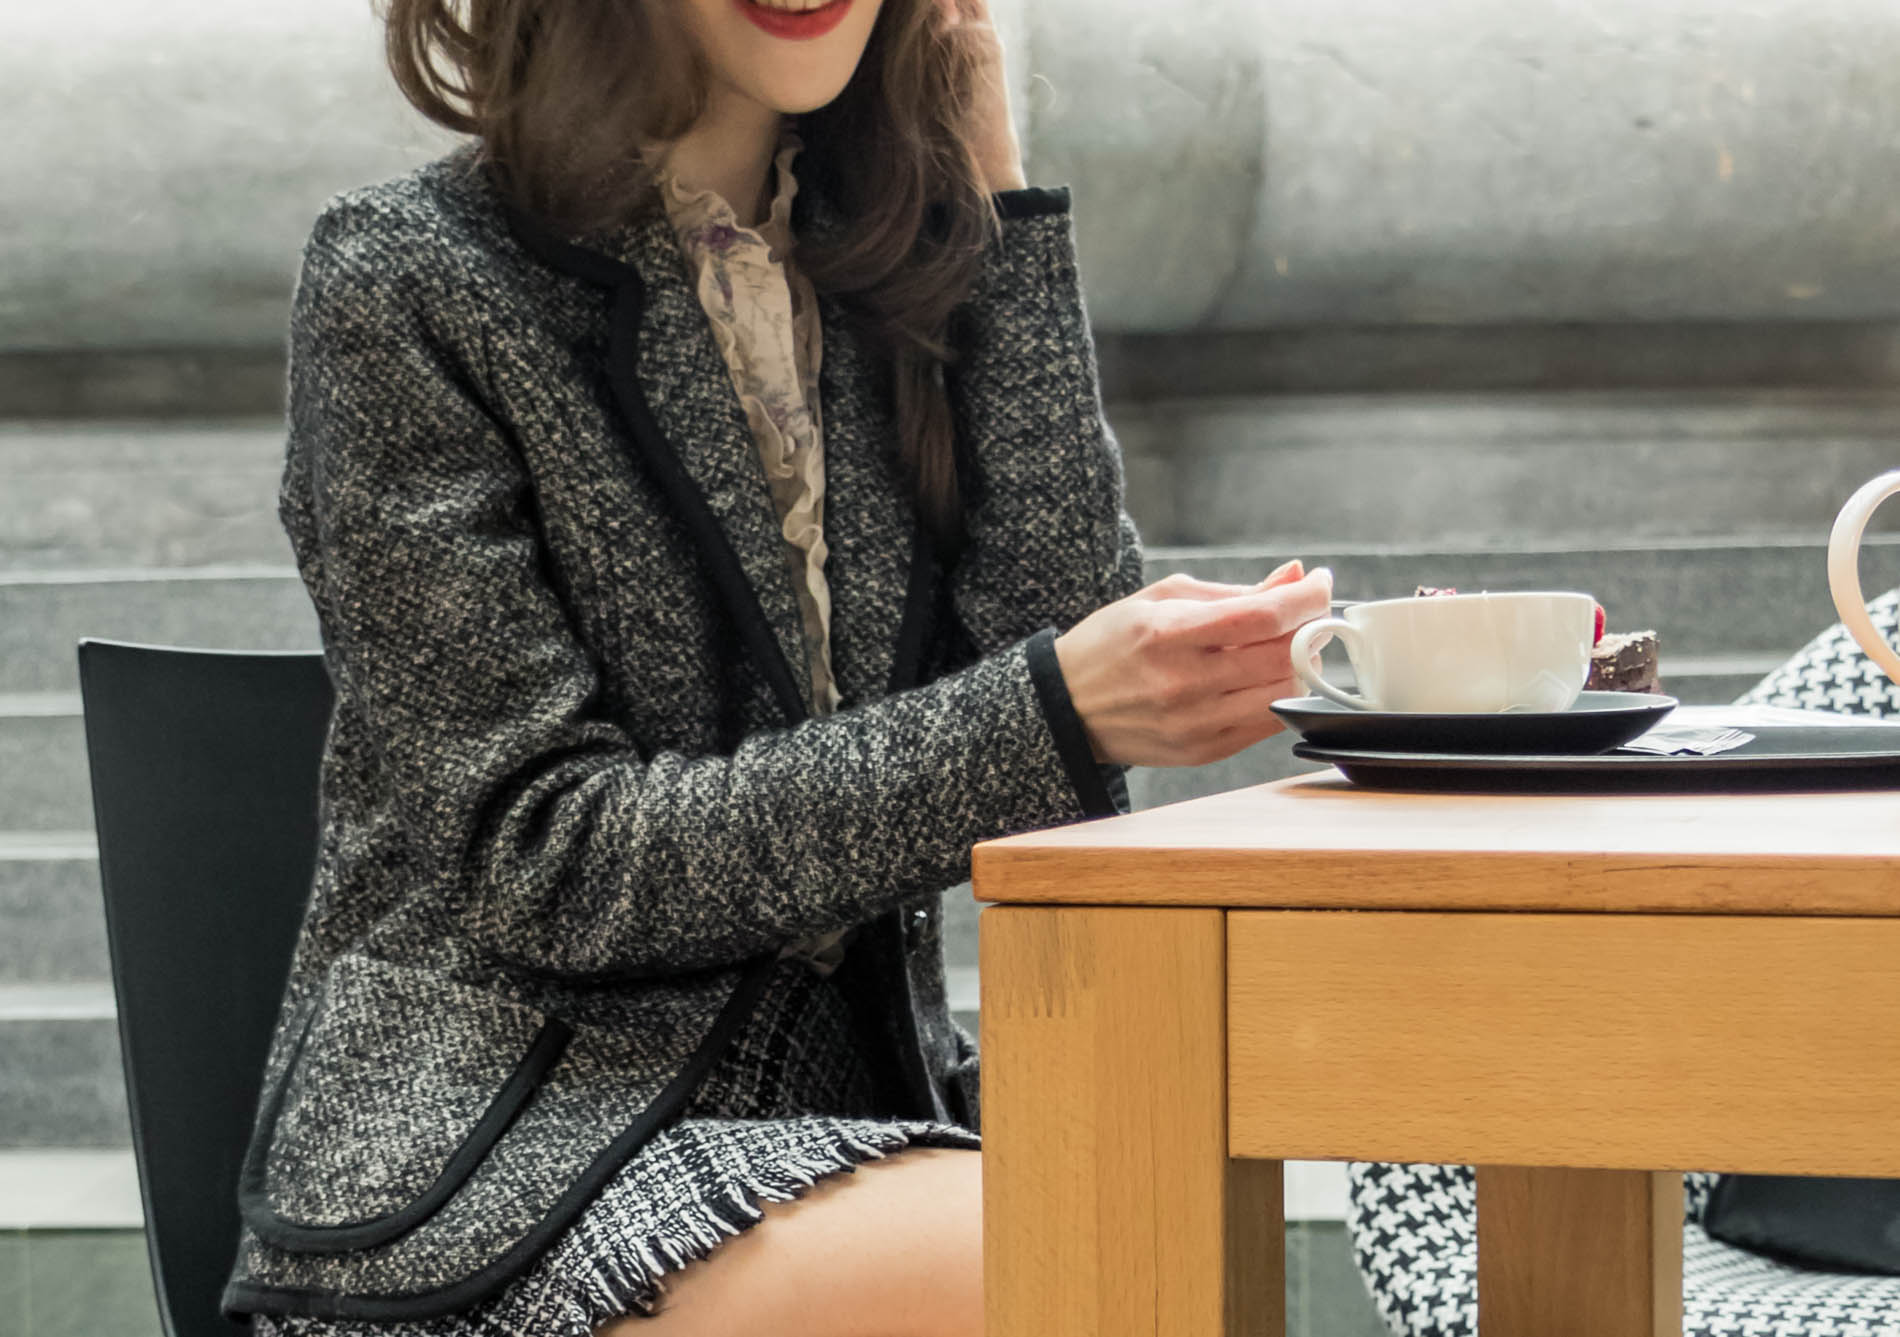 Fashion Blogger Veronika Lipar of Brunette from Wall Street dressed in tweed plaid mini skirt from Storets, black and white Marella tweed jacket, while drinking coffee